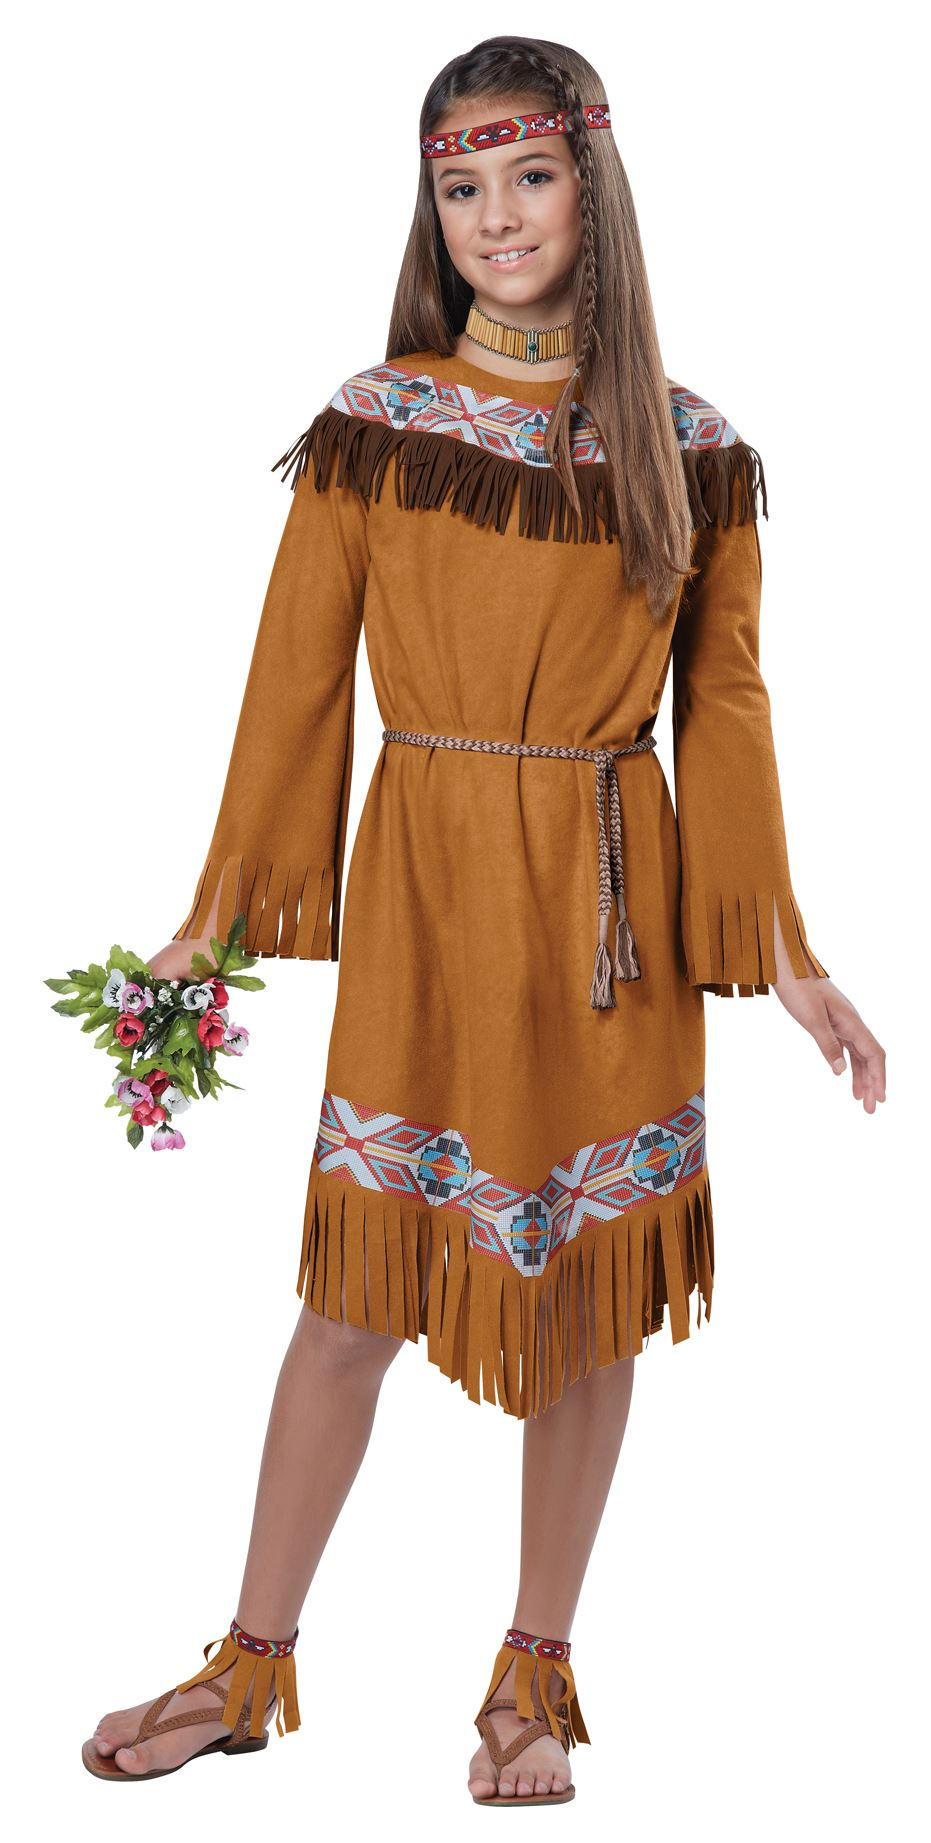 Adult Indian Girls Native American Costume 26 99 The Costume Land